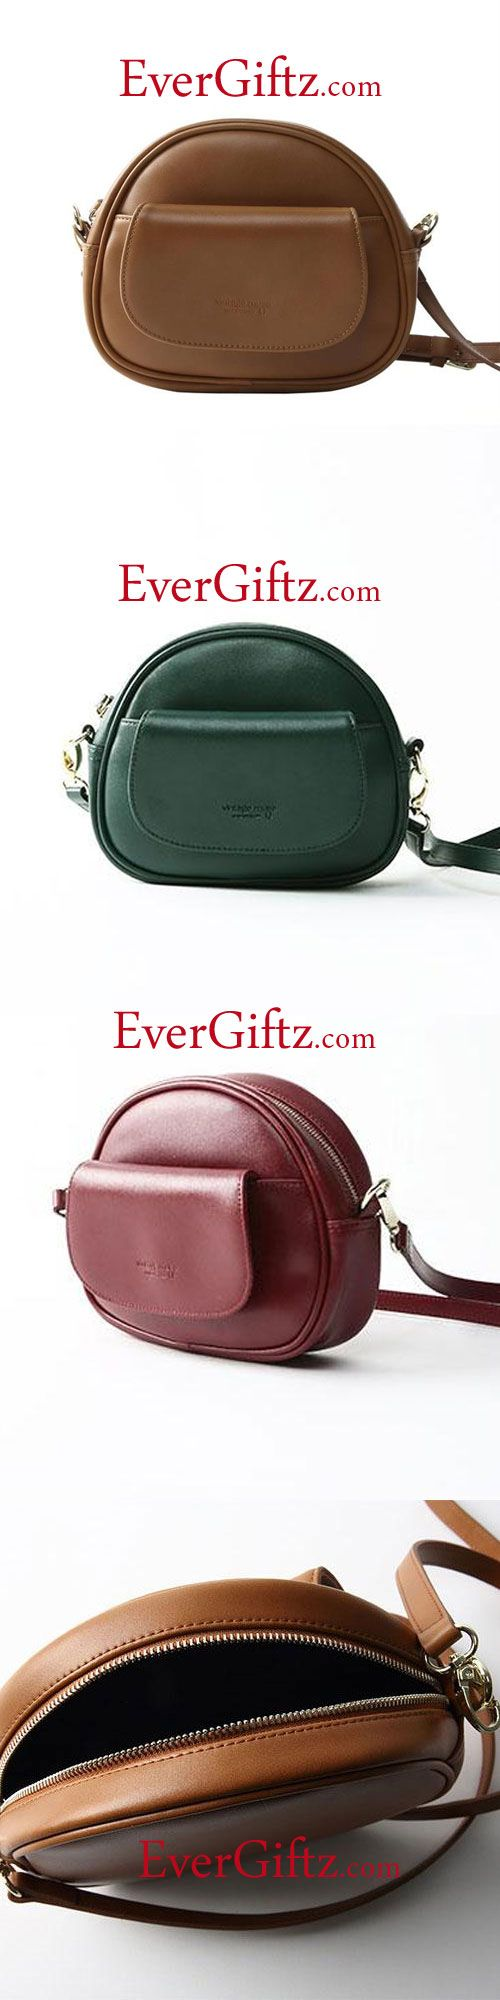 Genuine Leather Handbag Round Circle Bag Women Cute Girl Unique Purse Crossbody Bag Shoulder Bag